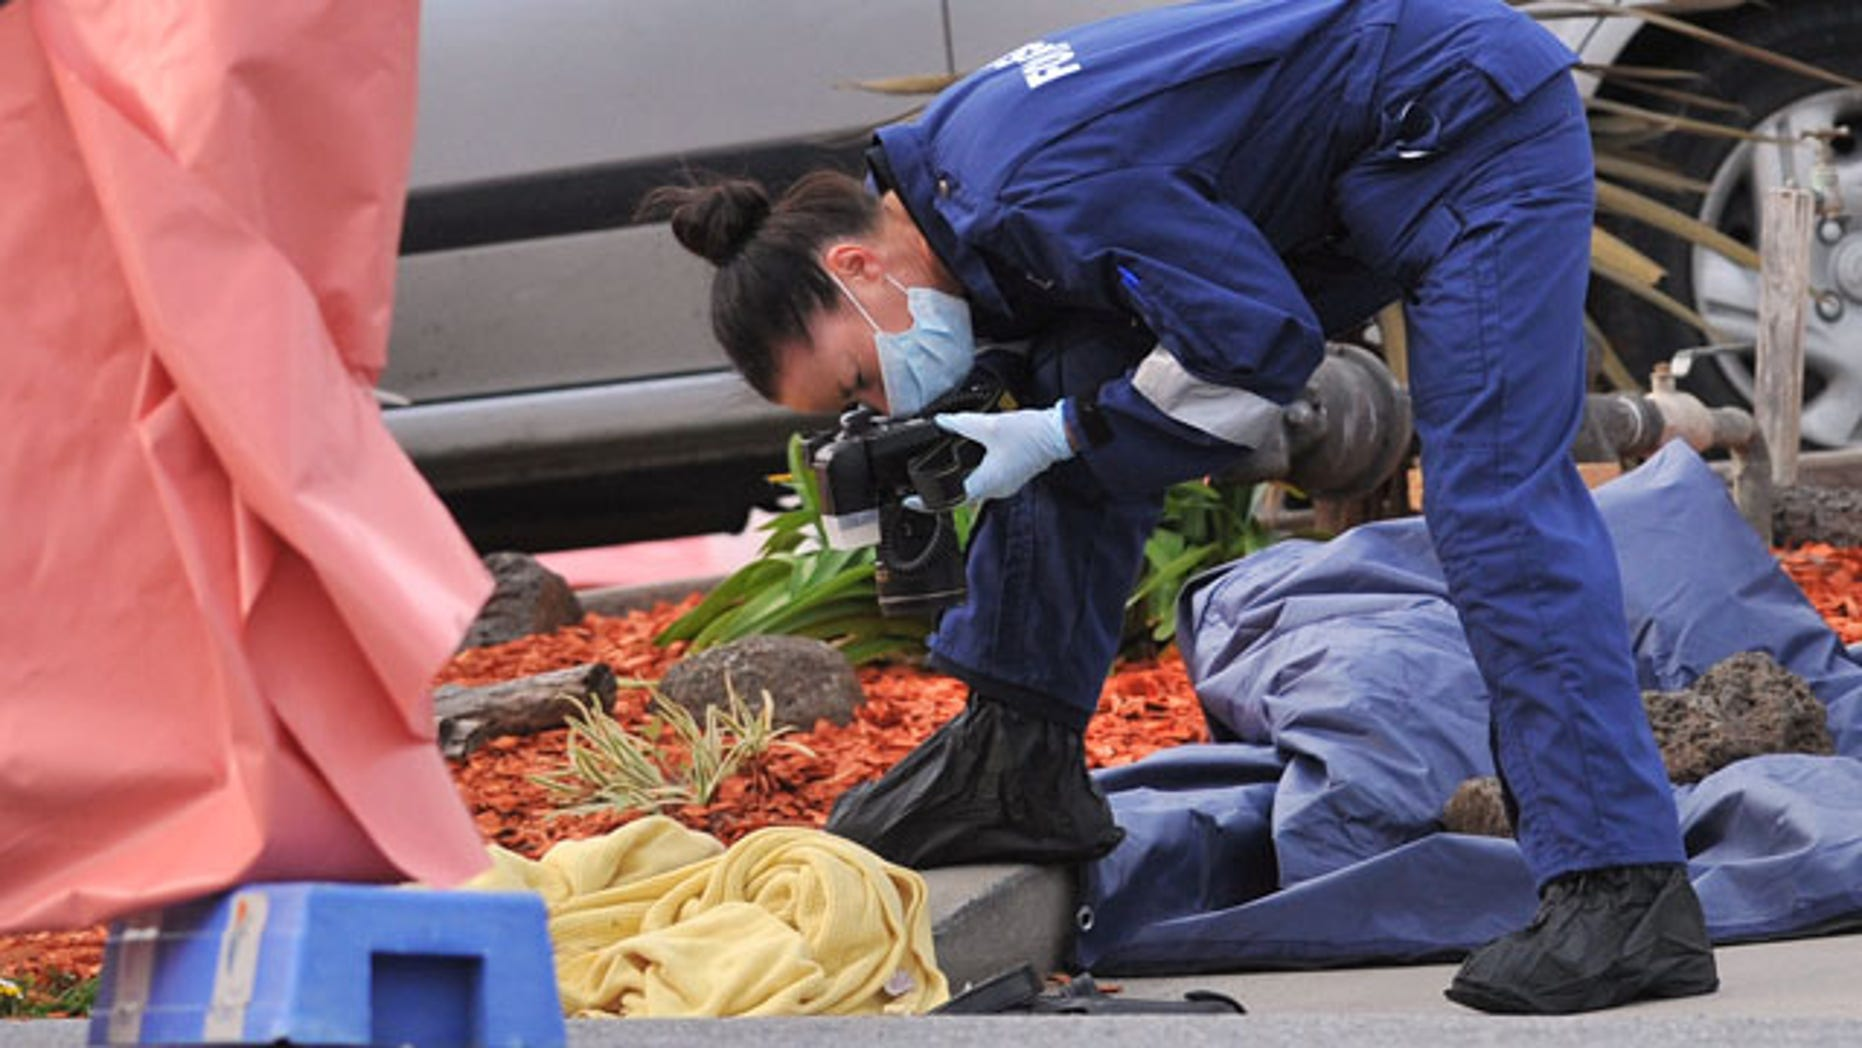 September 24, 2014: A forensic officer documents objects including a blanket at the scene of a fatal shooting at Endeavour Hills Police Station in Melbourne. (AP Photo/AAP Image, Julian Smith)